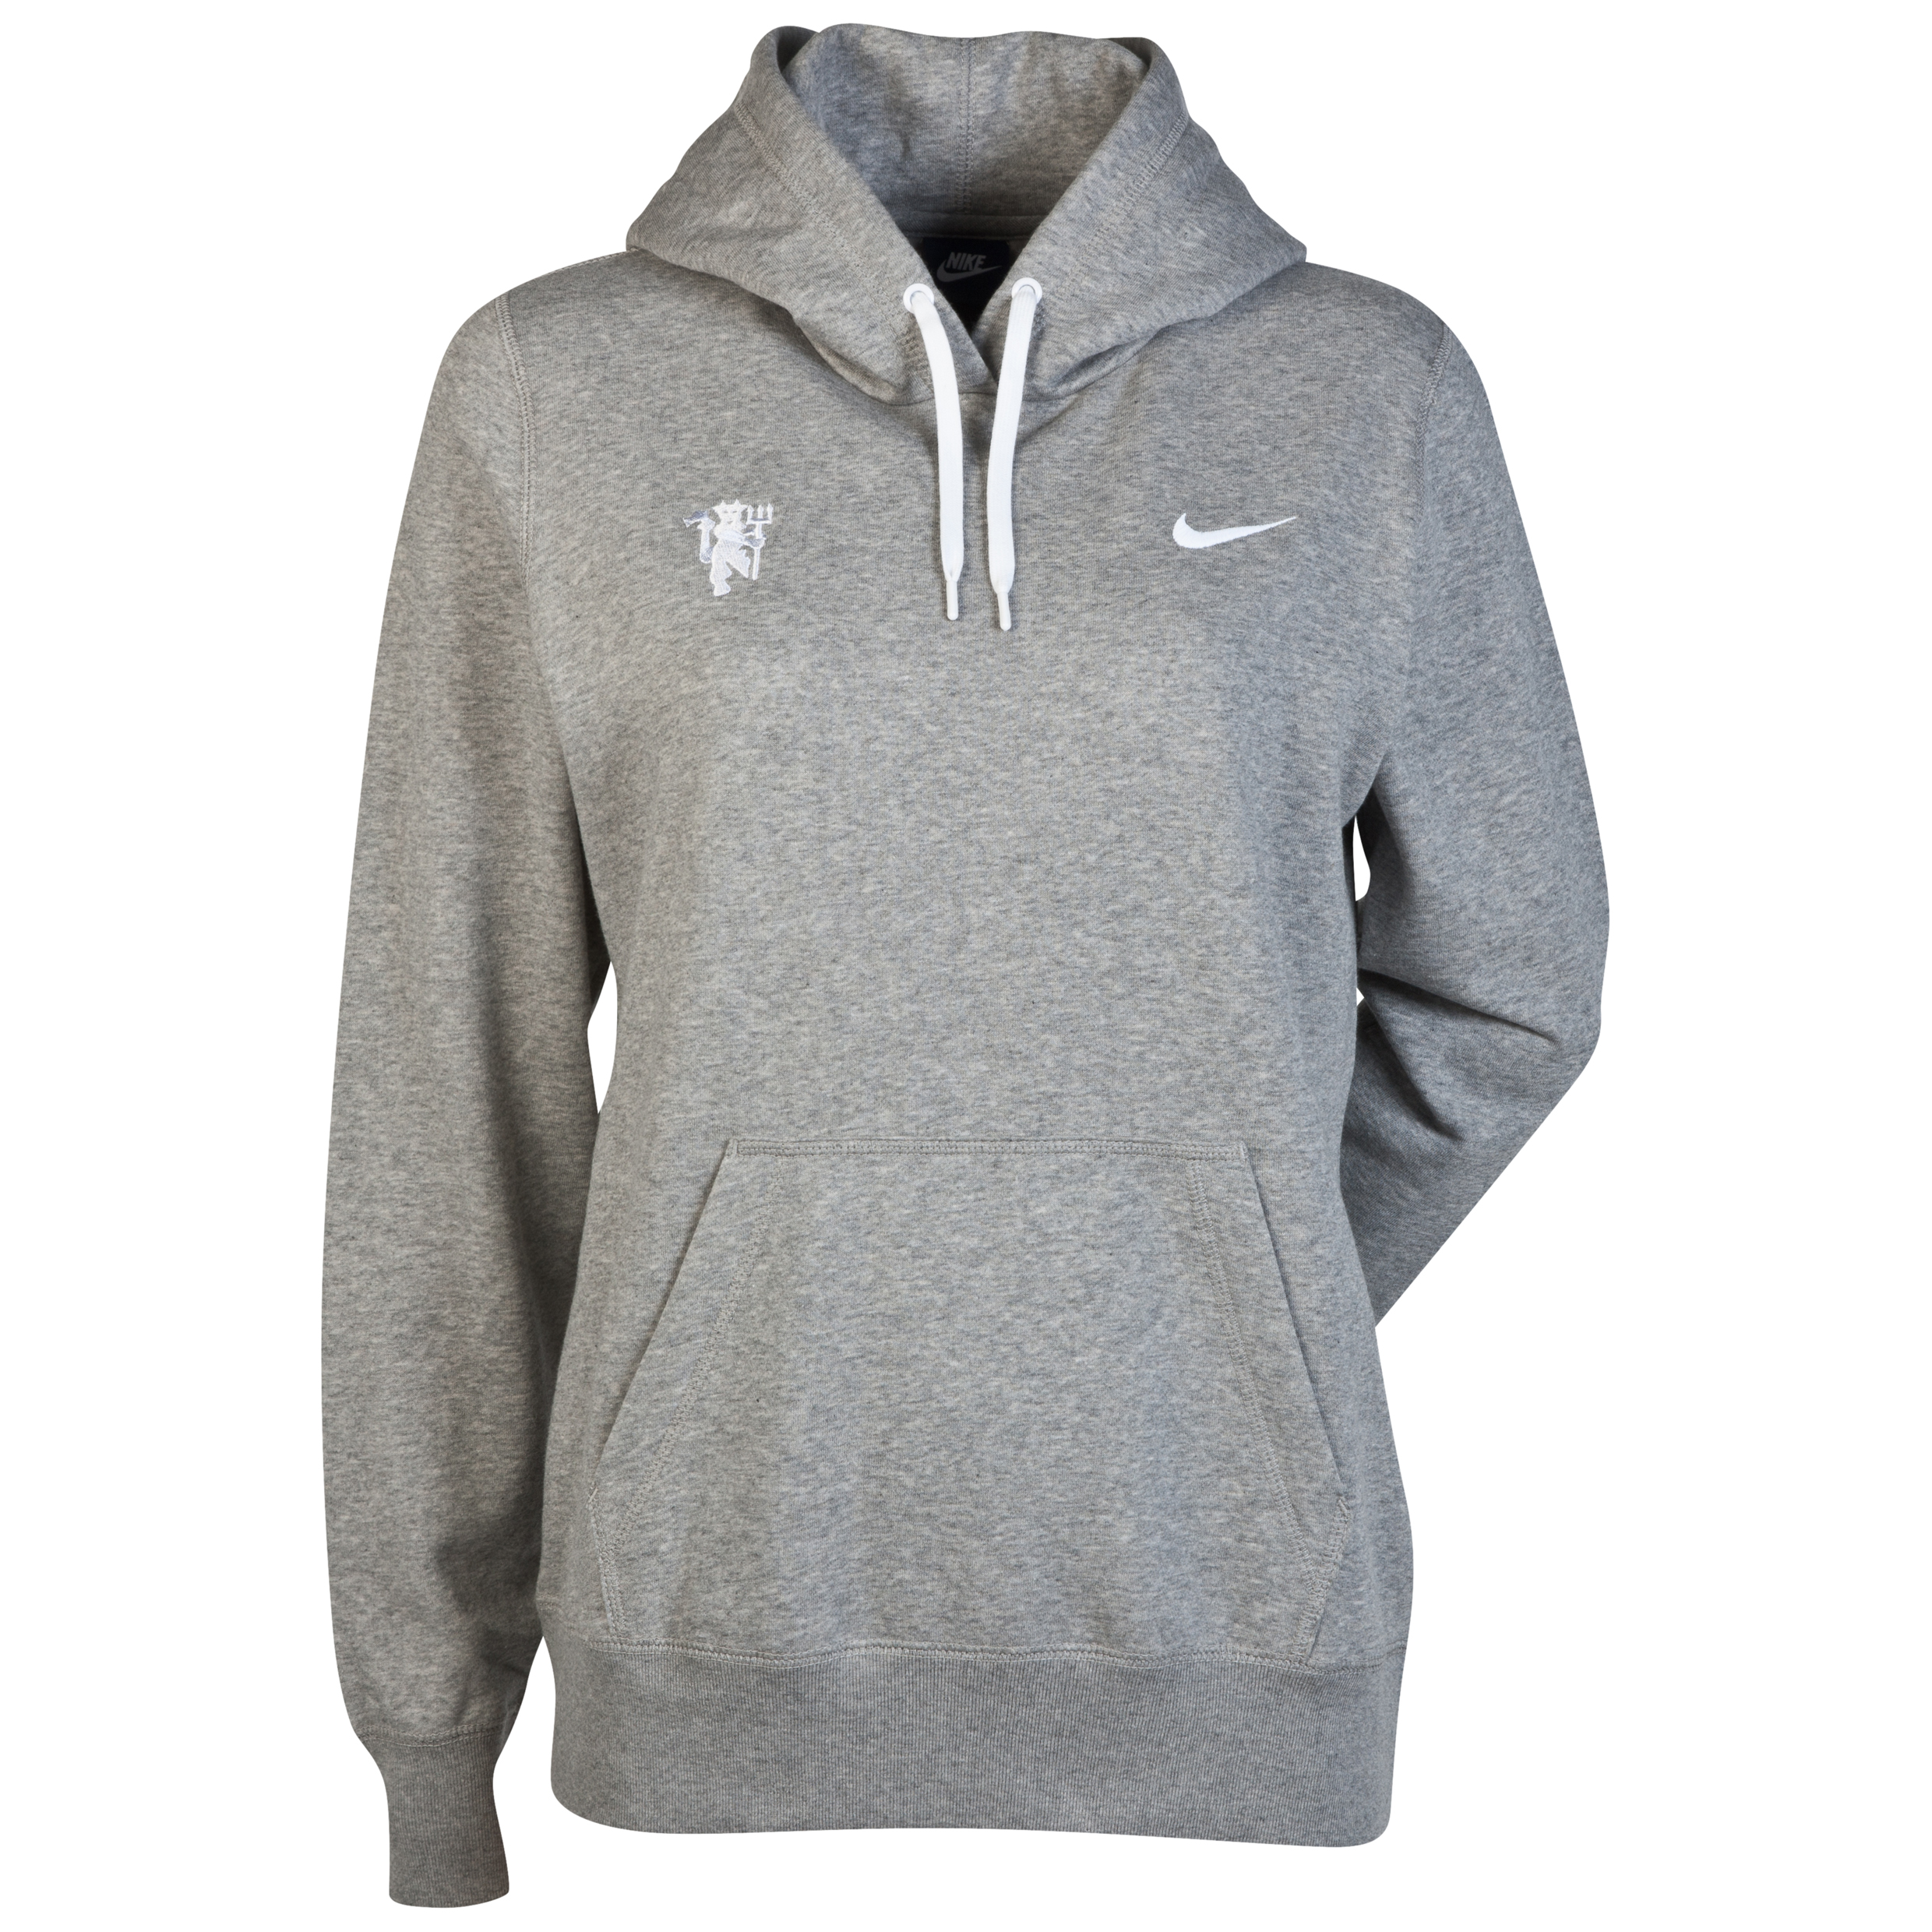 Manchester United Club Hoody - Dark Grey Heather/White - Womens Dk Grey